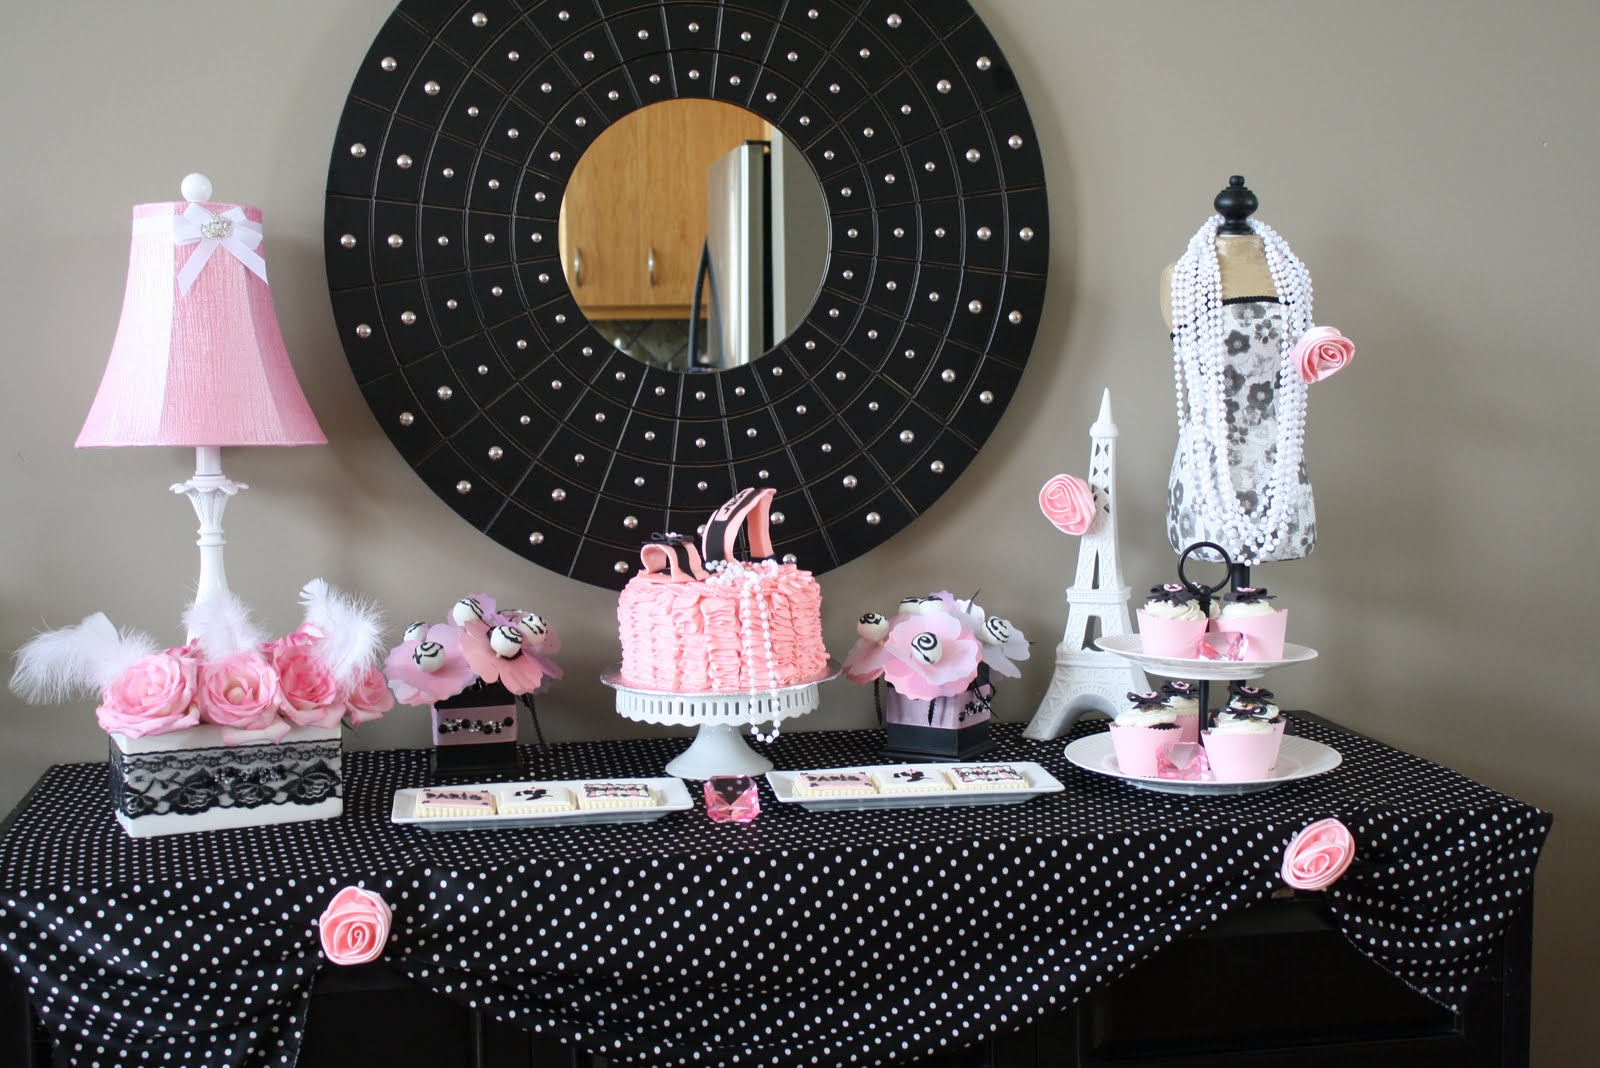 Paris Themed Birthday Party Ideas - Parisian couture themed party